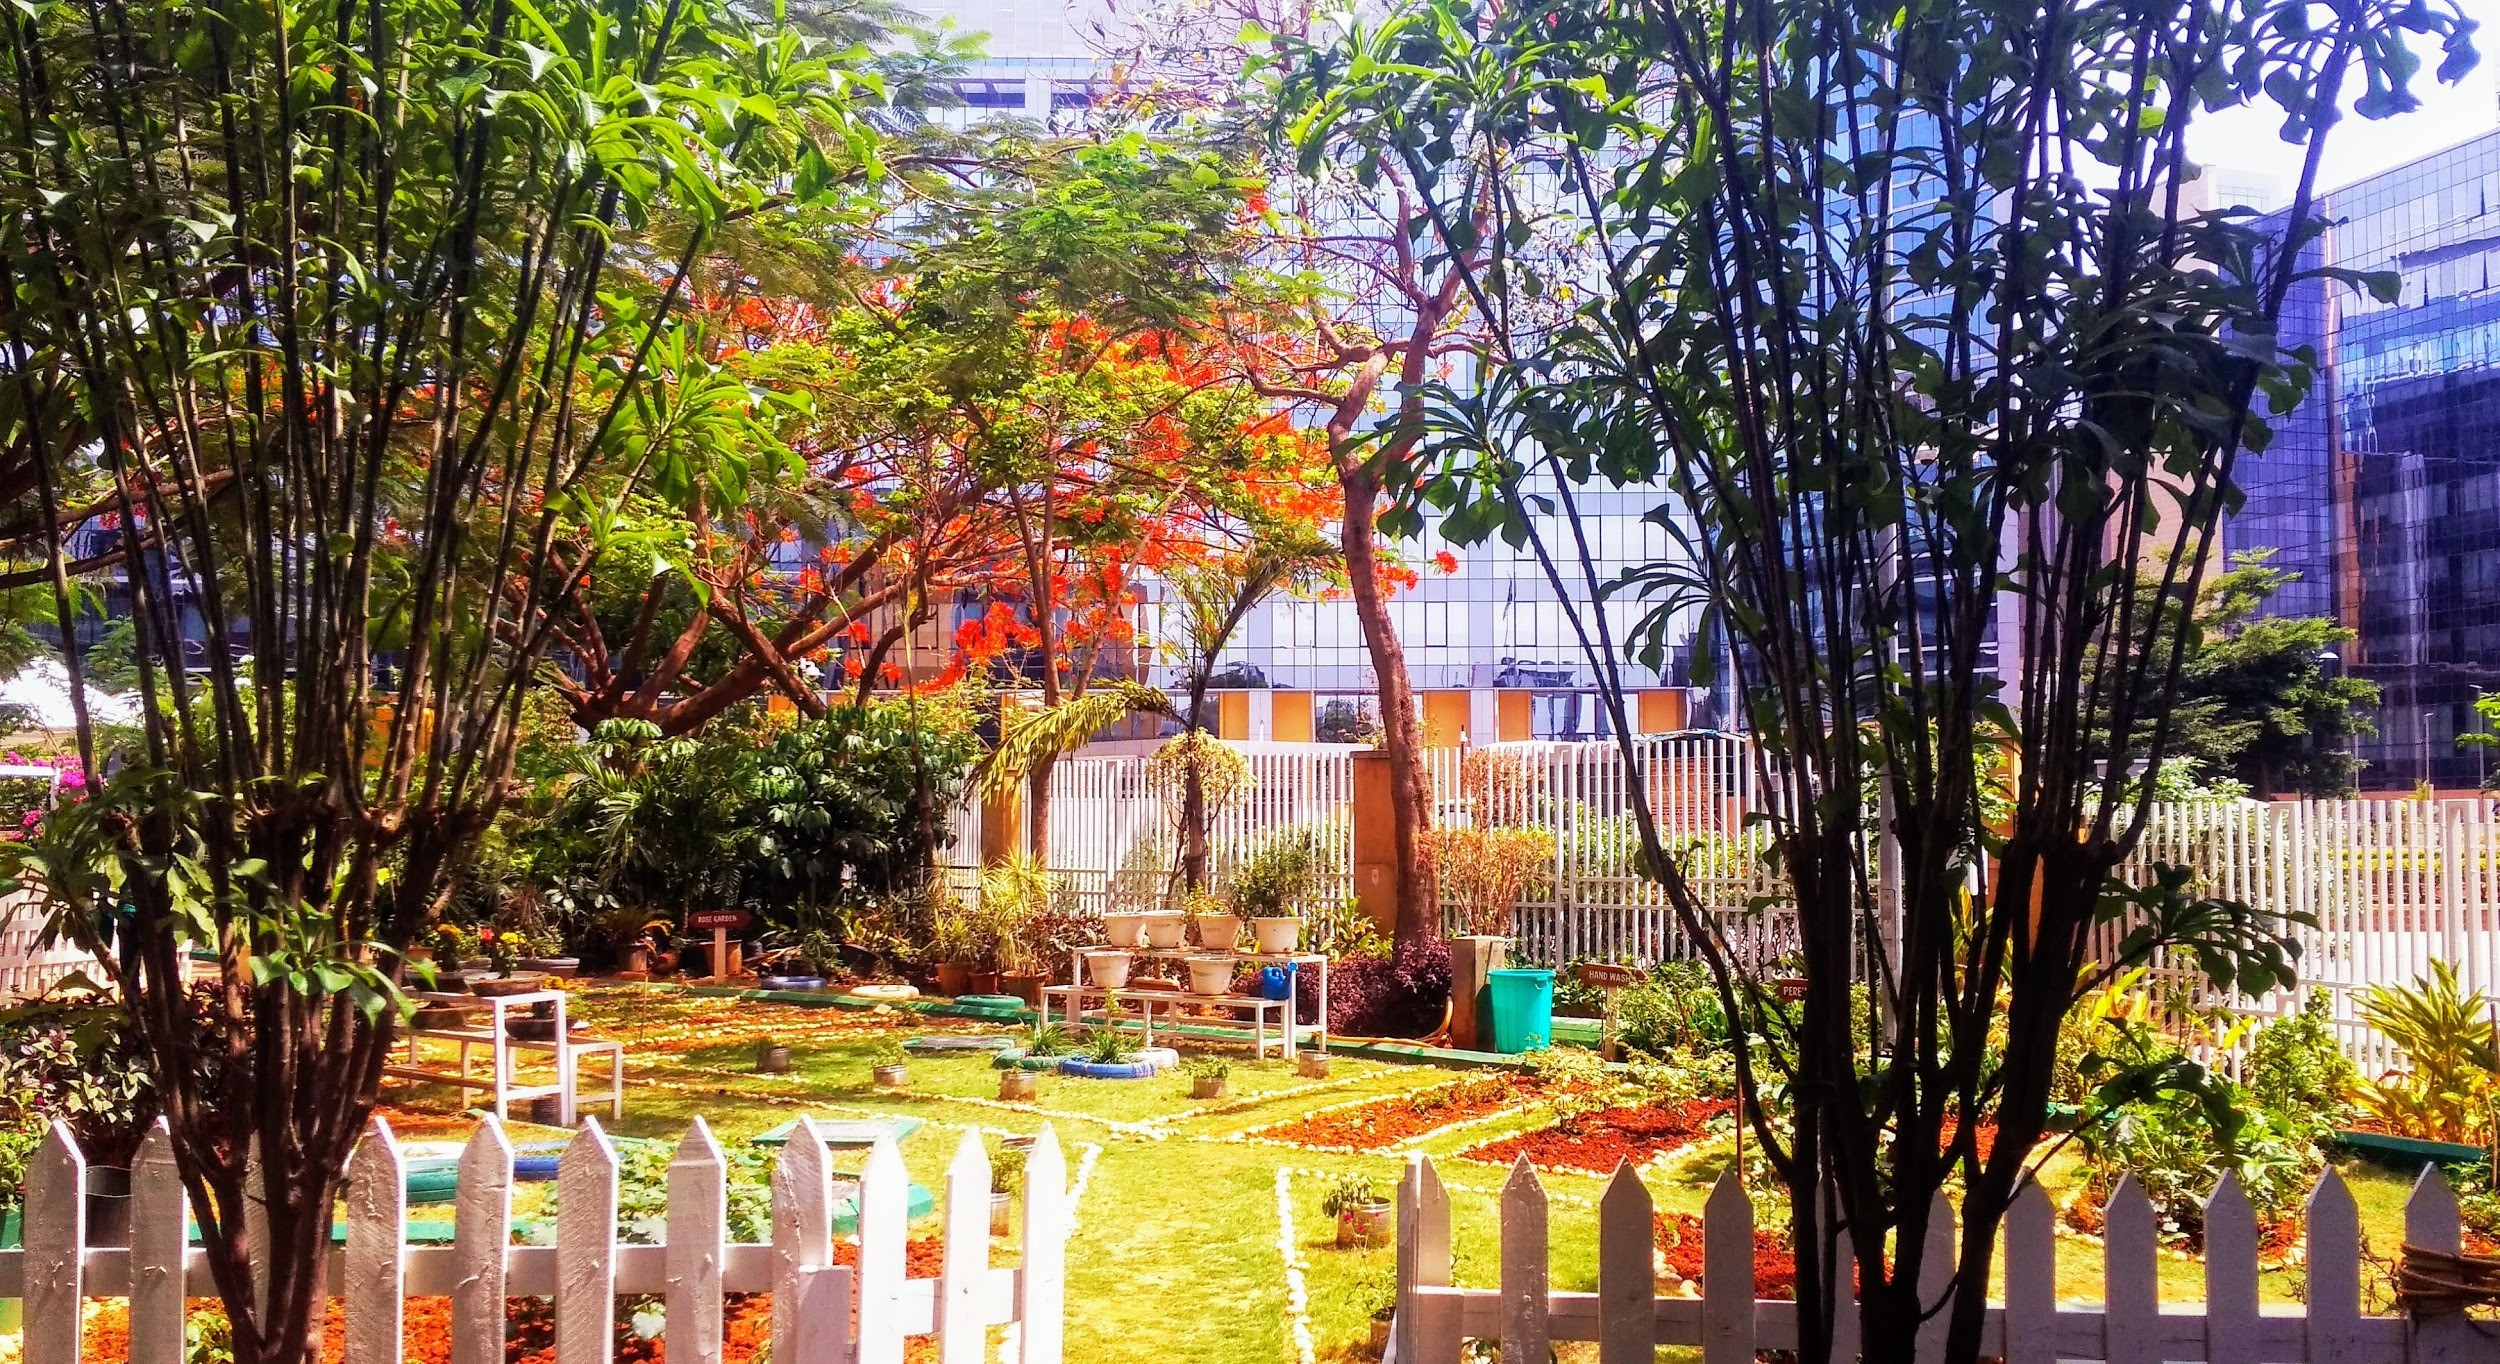 The Cisco community garden beams with light on a beautiful sunny day in Bangalore.